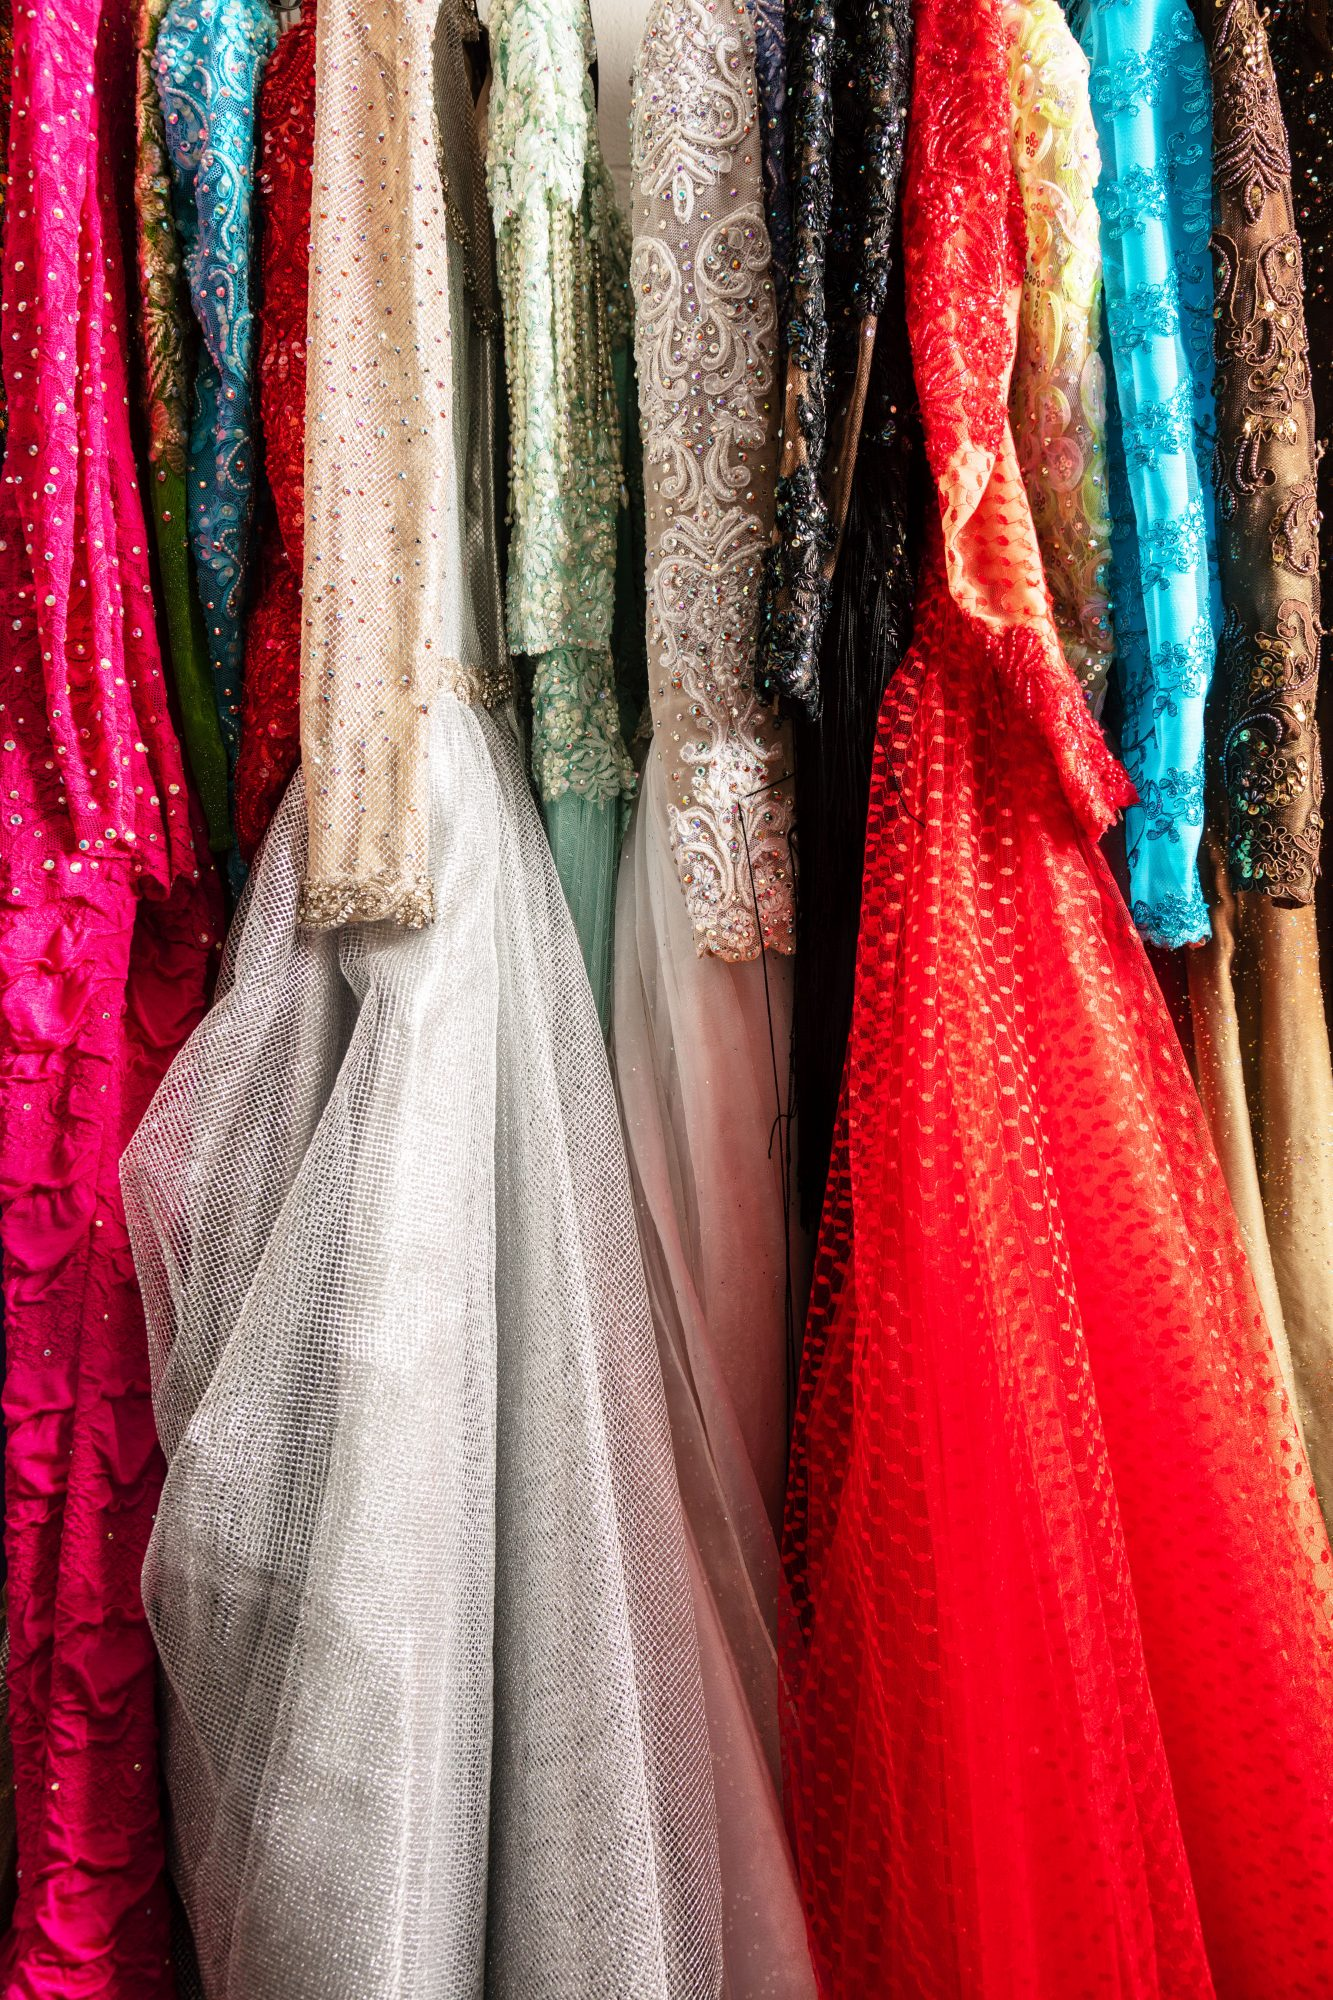 A Small Selection of Loretta Lynn's Gowns in Her Collection